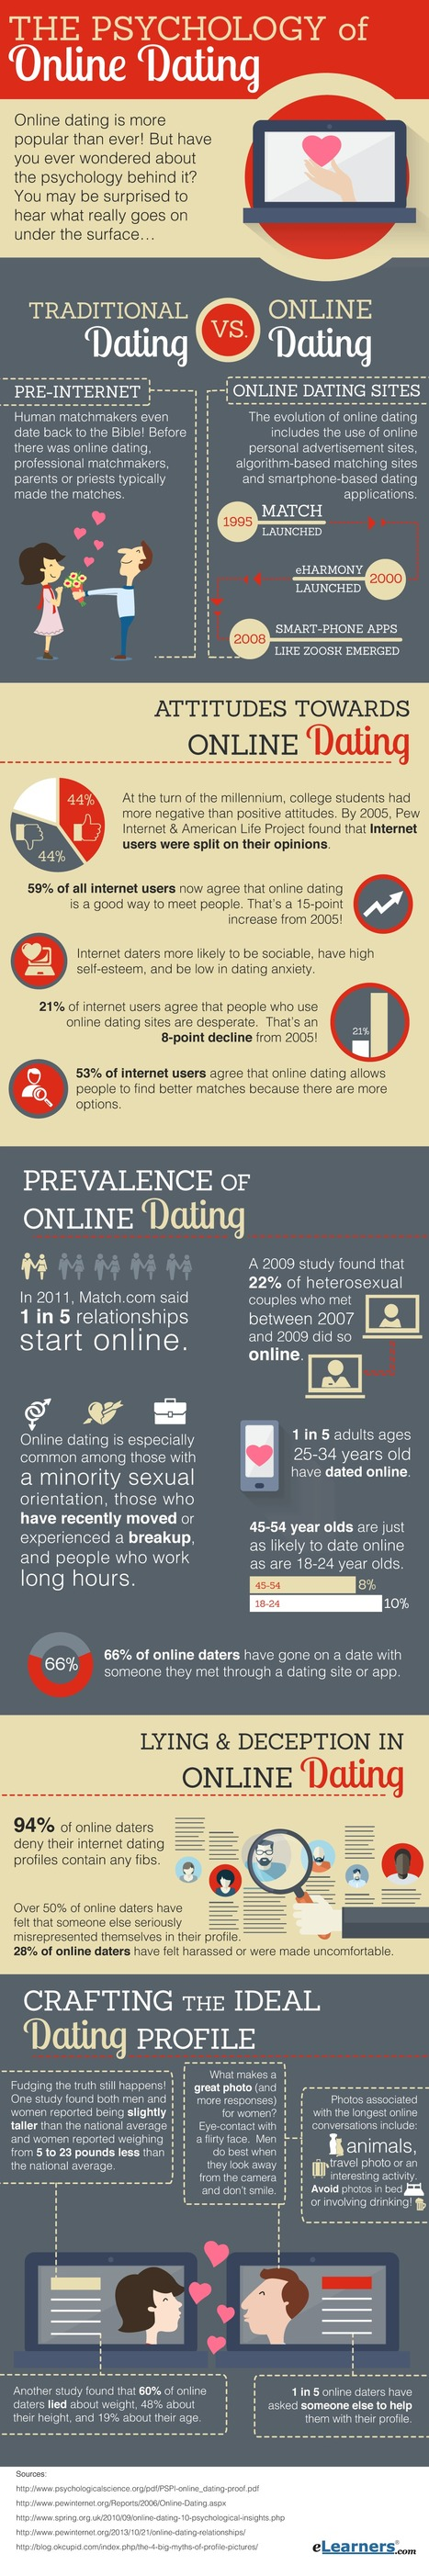 The Psychology of Online Dating | Psychology Matters | Scoop.it